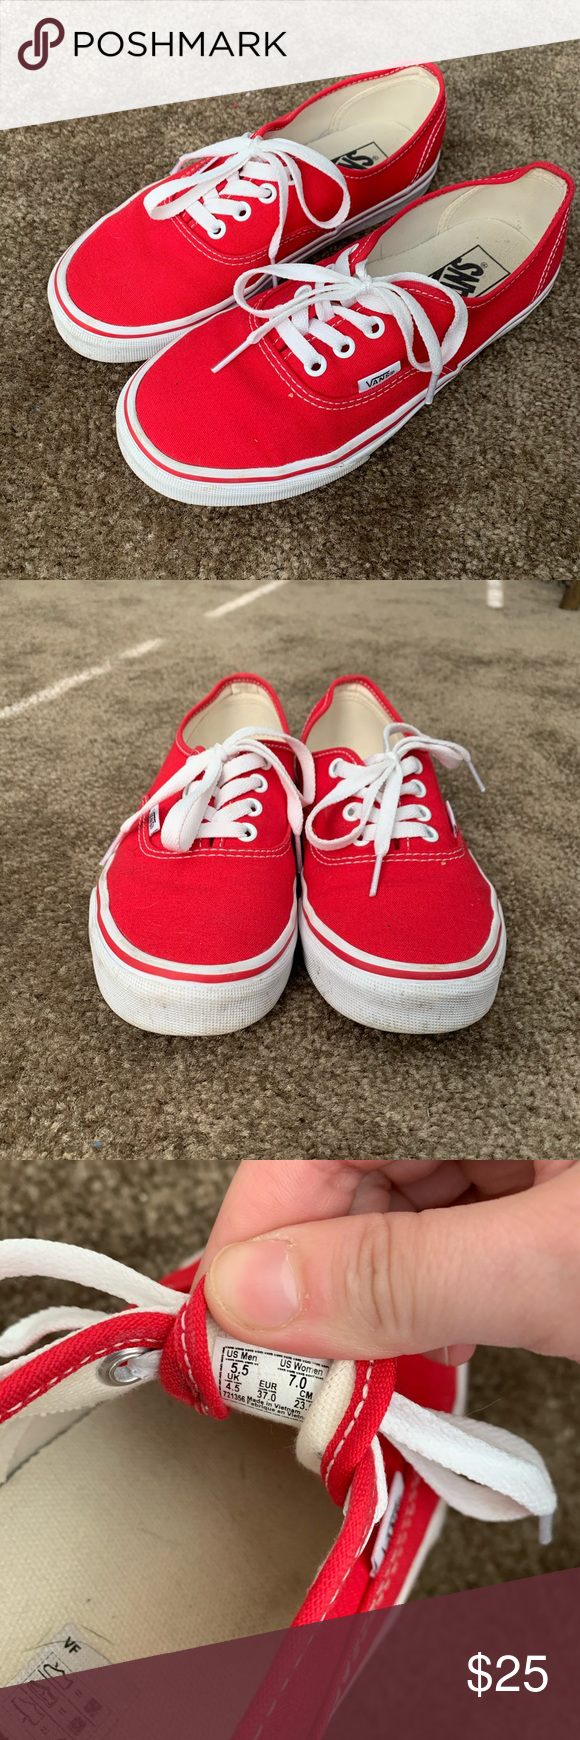 Vans Size 7 (With images) | Red vans